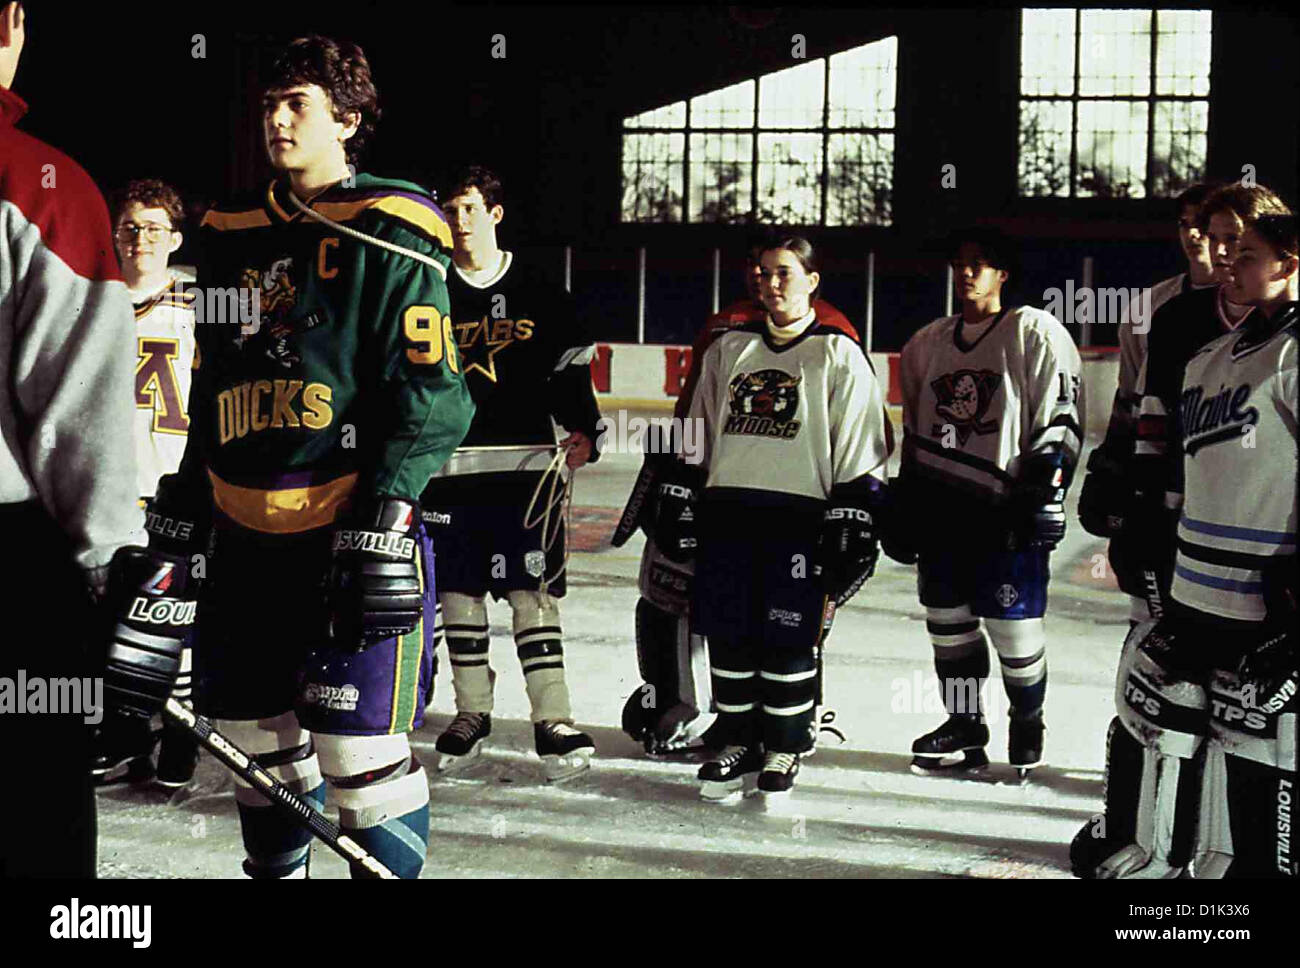 Mighty Ducks 3 - Jetzt Mischen Sie Die Highschool Auf  D3: Mighty Ducks  Averman (Matt Doherty), Charlie (Joshua - Stock Image